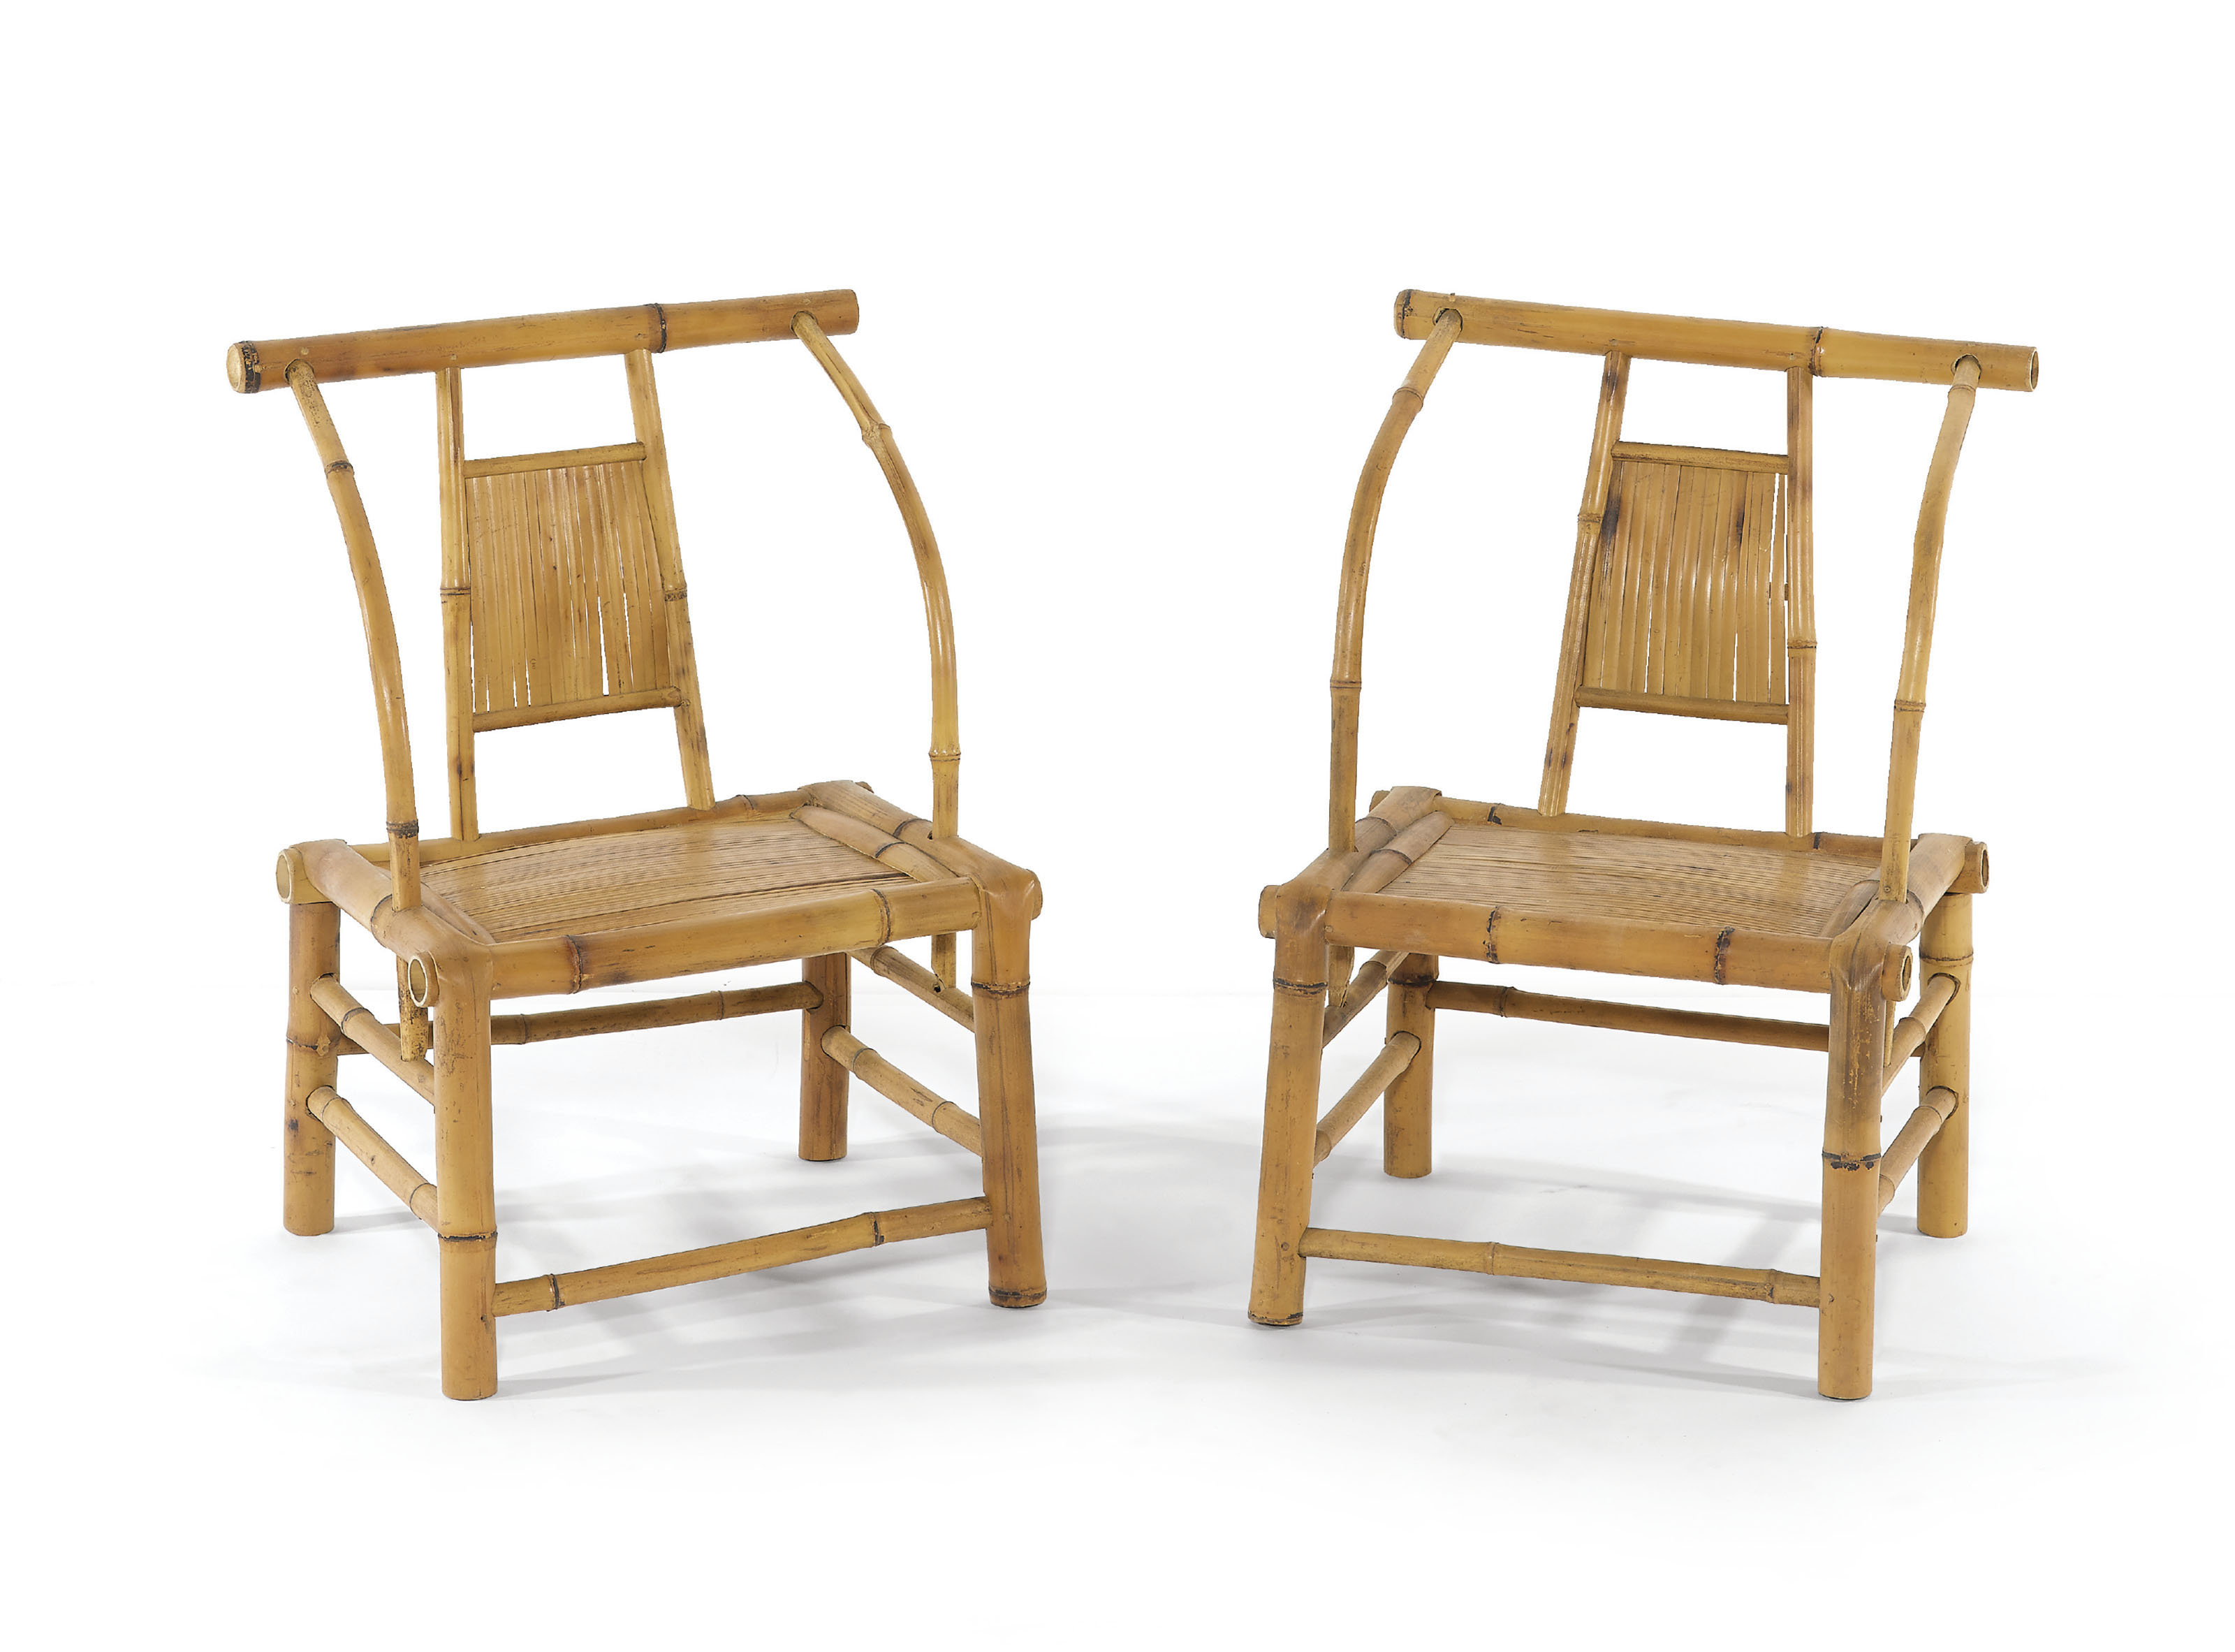 A PAIR OF CHILDREN'S BAMBOO AR